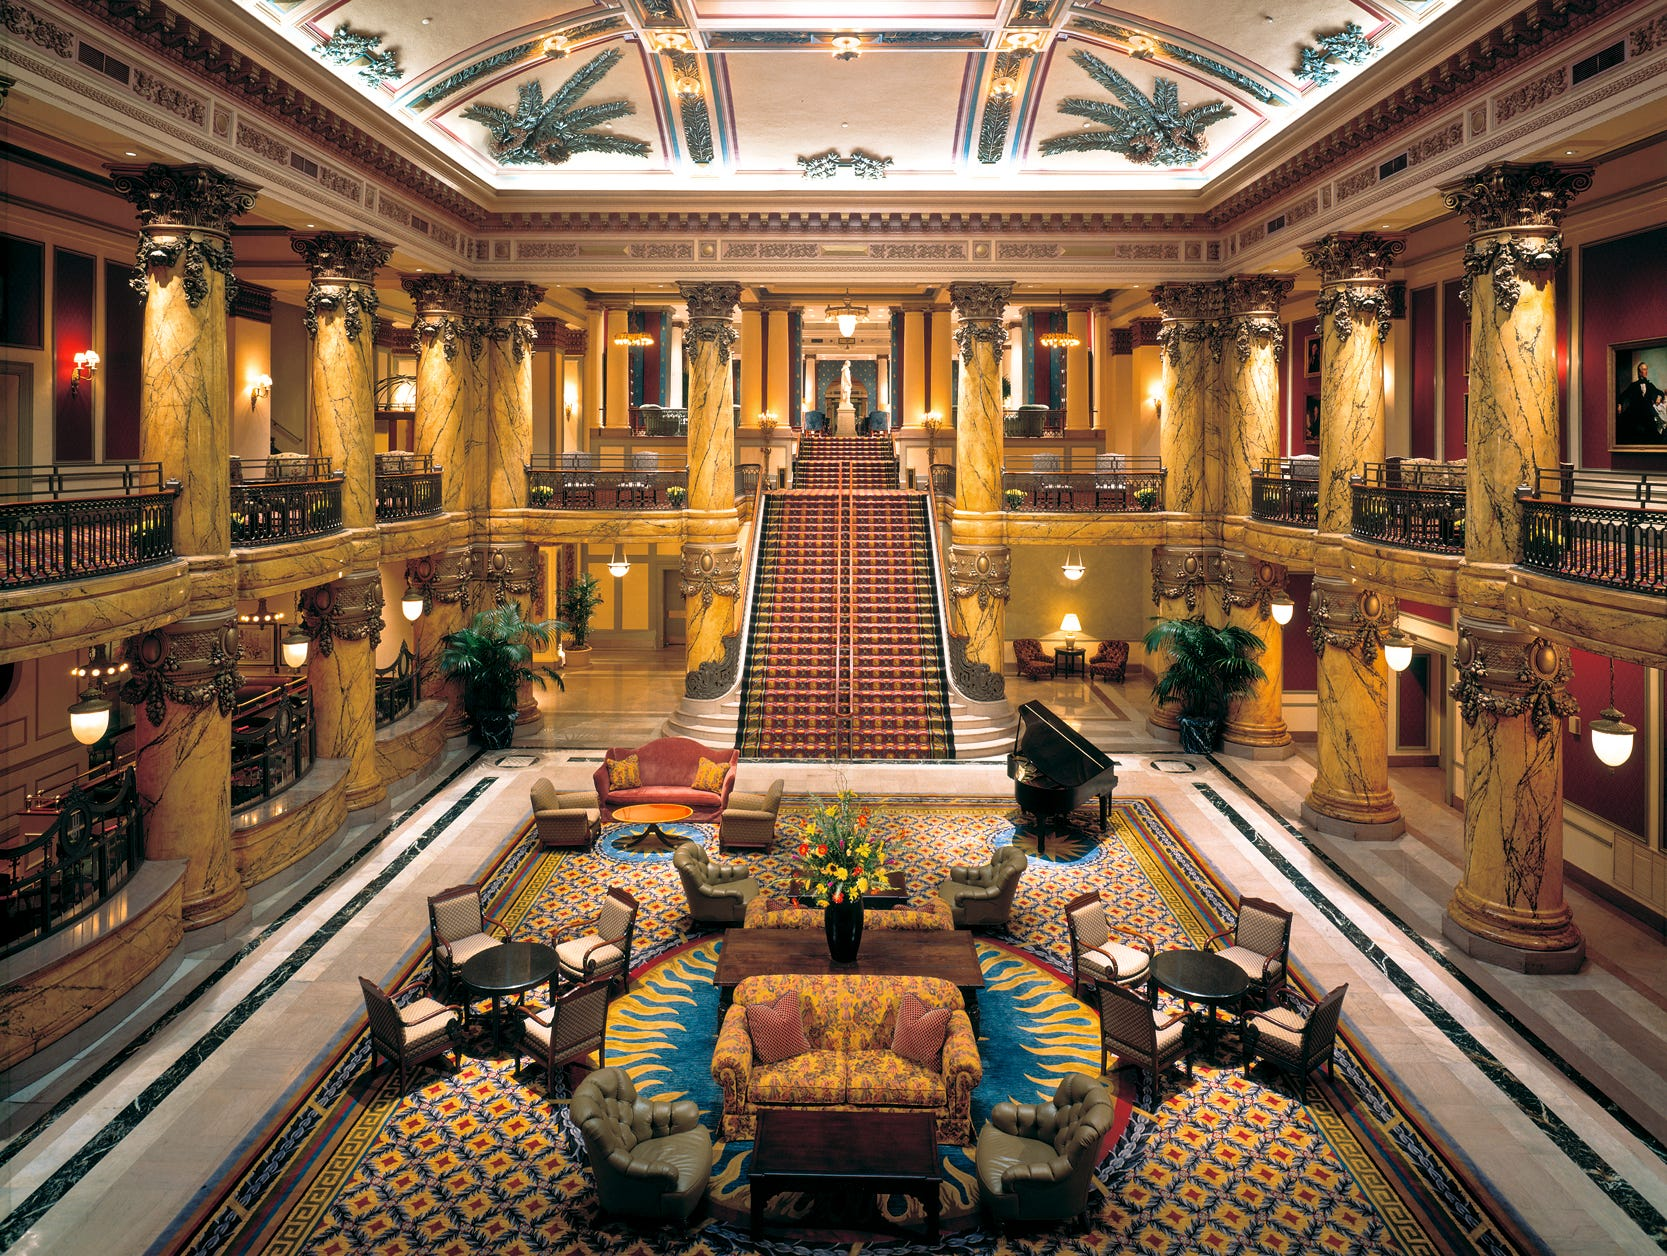 The main lobby of the Jefferson Hotel is sunken and spacious.